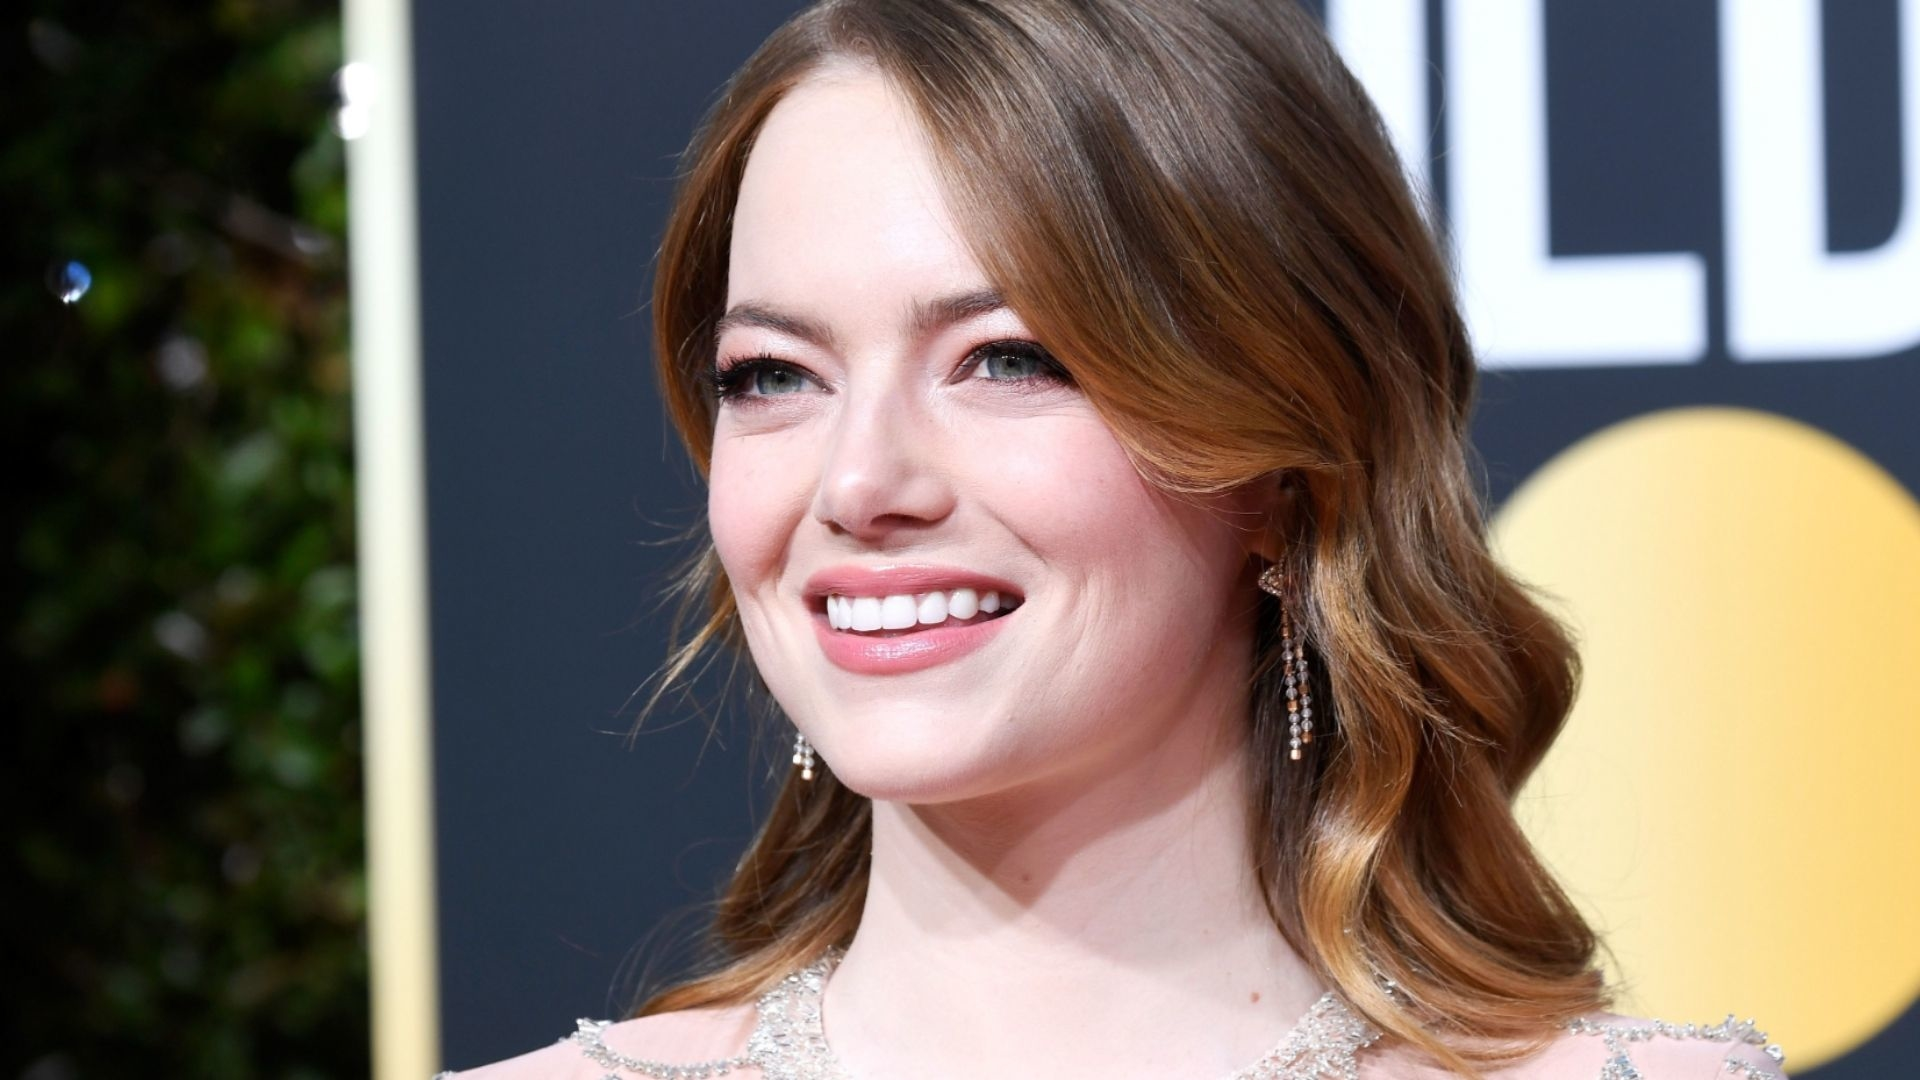 Everything You Need To Know About Emma Stone's Unique Engagement Ring